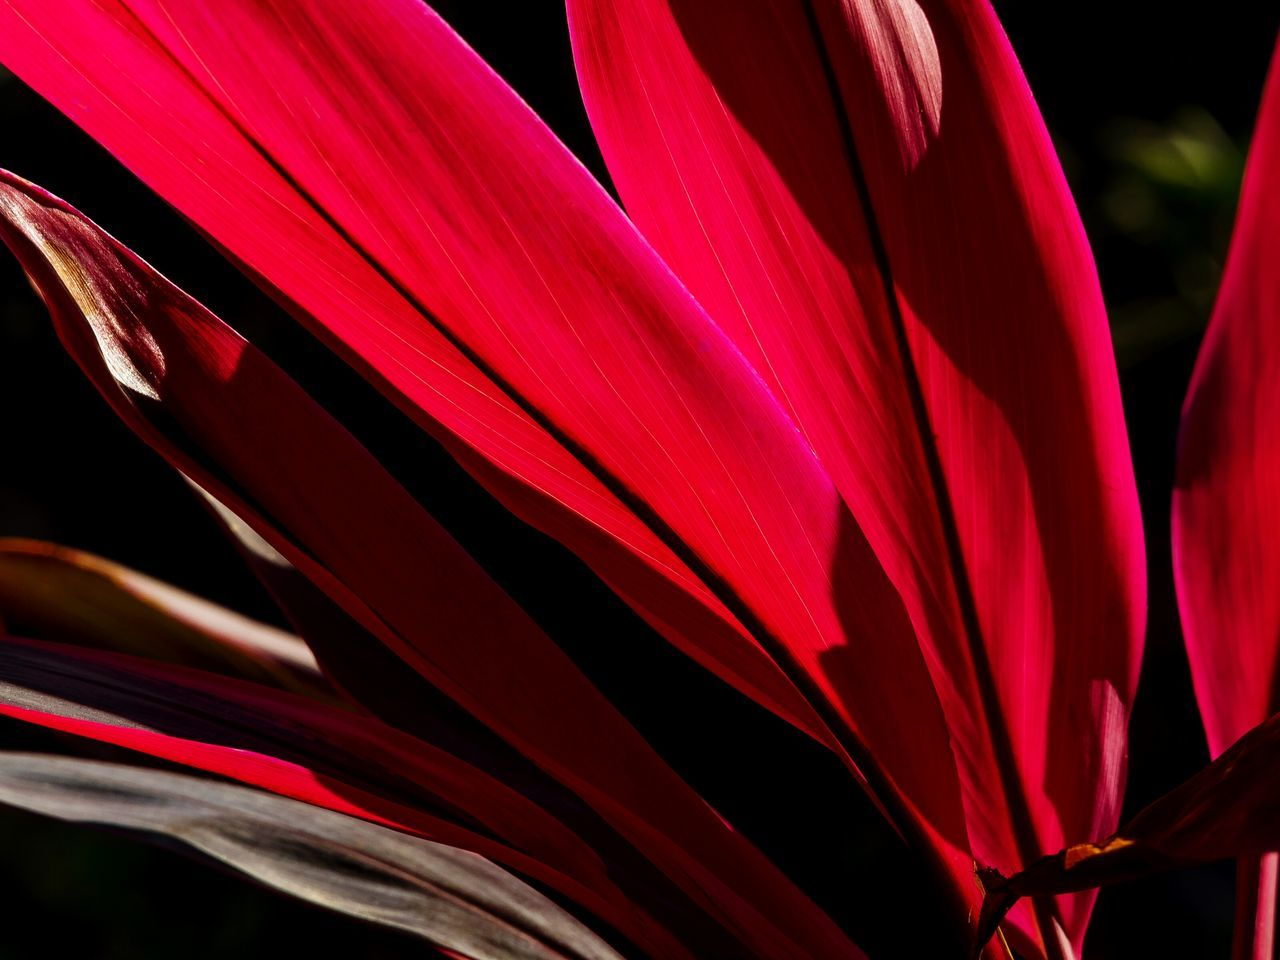 Close-up Red Growth Full Frame Leaf Leafs Photography Beauty In Nature No People Freshness Outdoors The Week Of Eyeem My Unique Style EyeEm Gallery Master ClassLeaf Veins Illuminated Silhouette_collection Artistic ExpressionTranquility Abstract Photography Plant Getting Inspired Original Experiences Tranquil Scene Growth